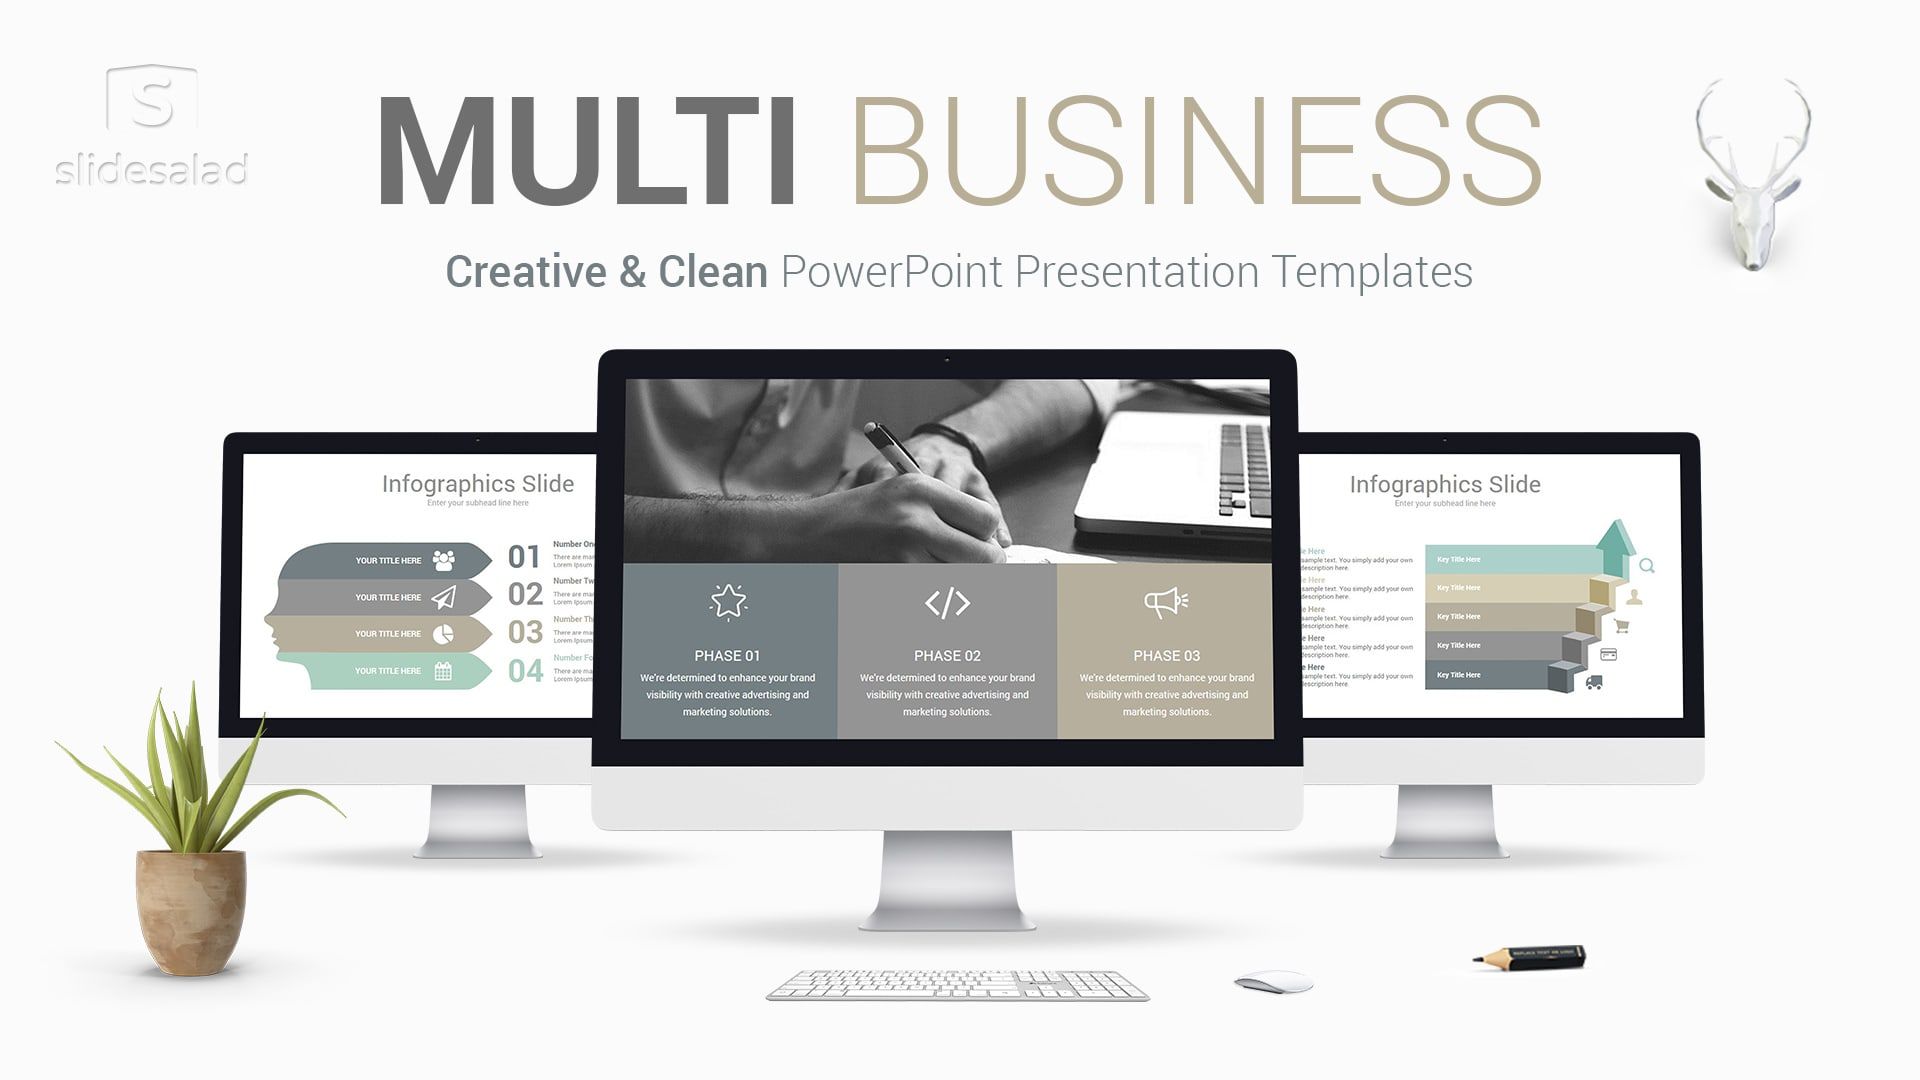 Multi Business PowerPoint Presentation Template - Clean Ready-to-Use PPT Templates Design